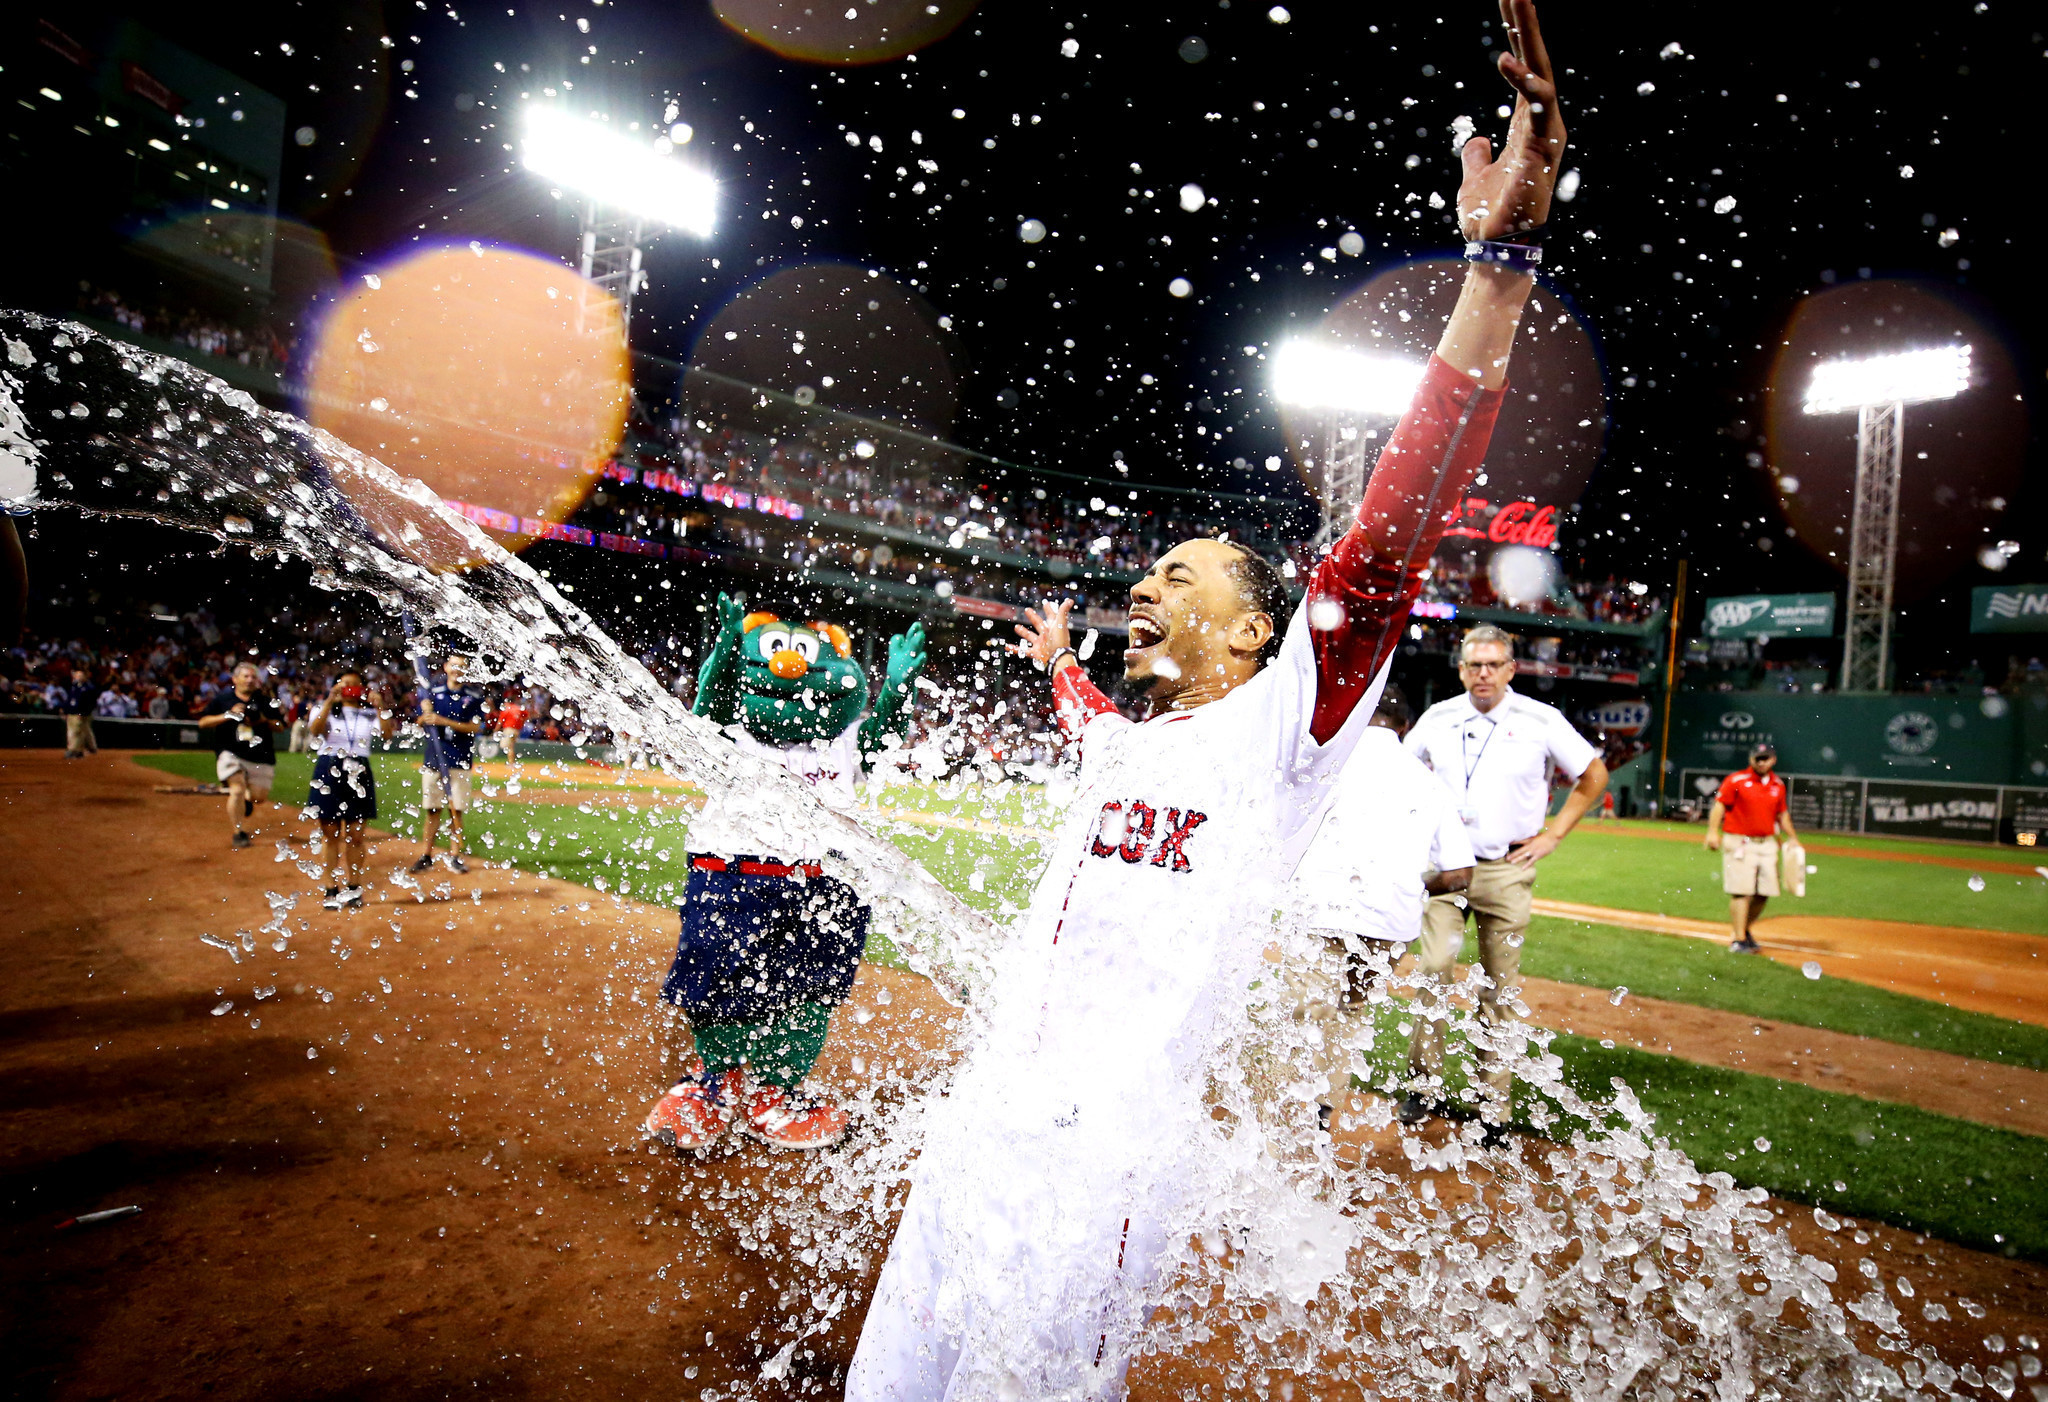 Hc-red-sox-walk-off-with-5-4-win-over-cardinals-20170817